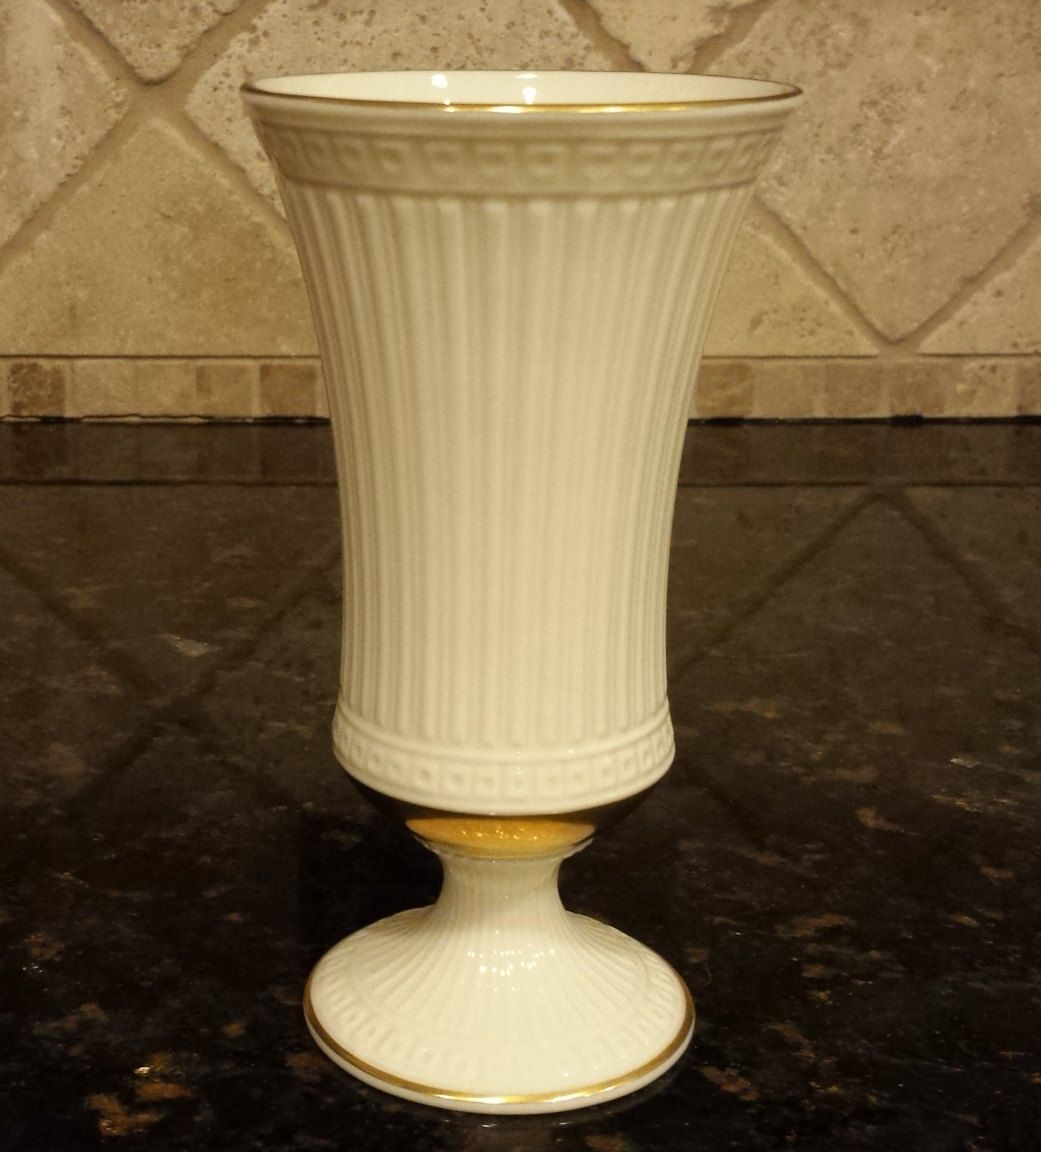 Vintage lenox vase grecian collection ivory porcelain with gold vintage lenox vase grecian collection ivory porcelain with gold trim 7 inch floridaeventfo Image collections